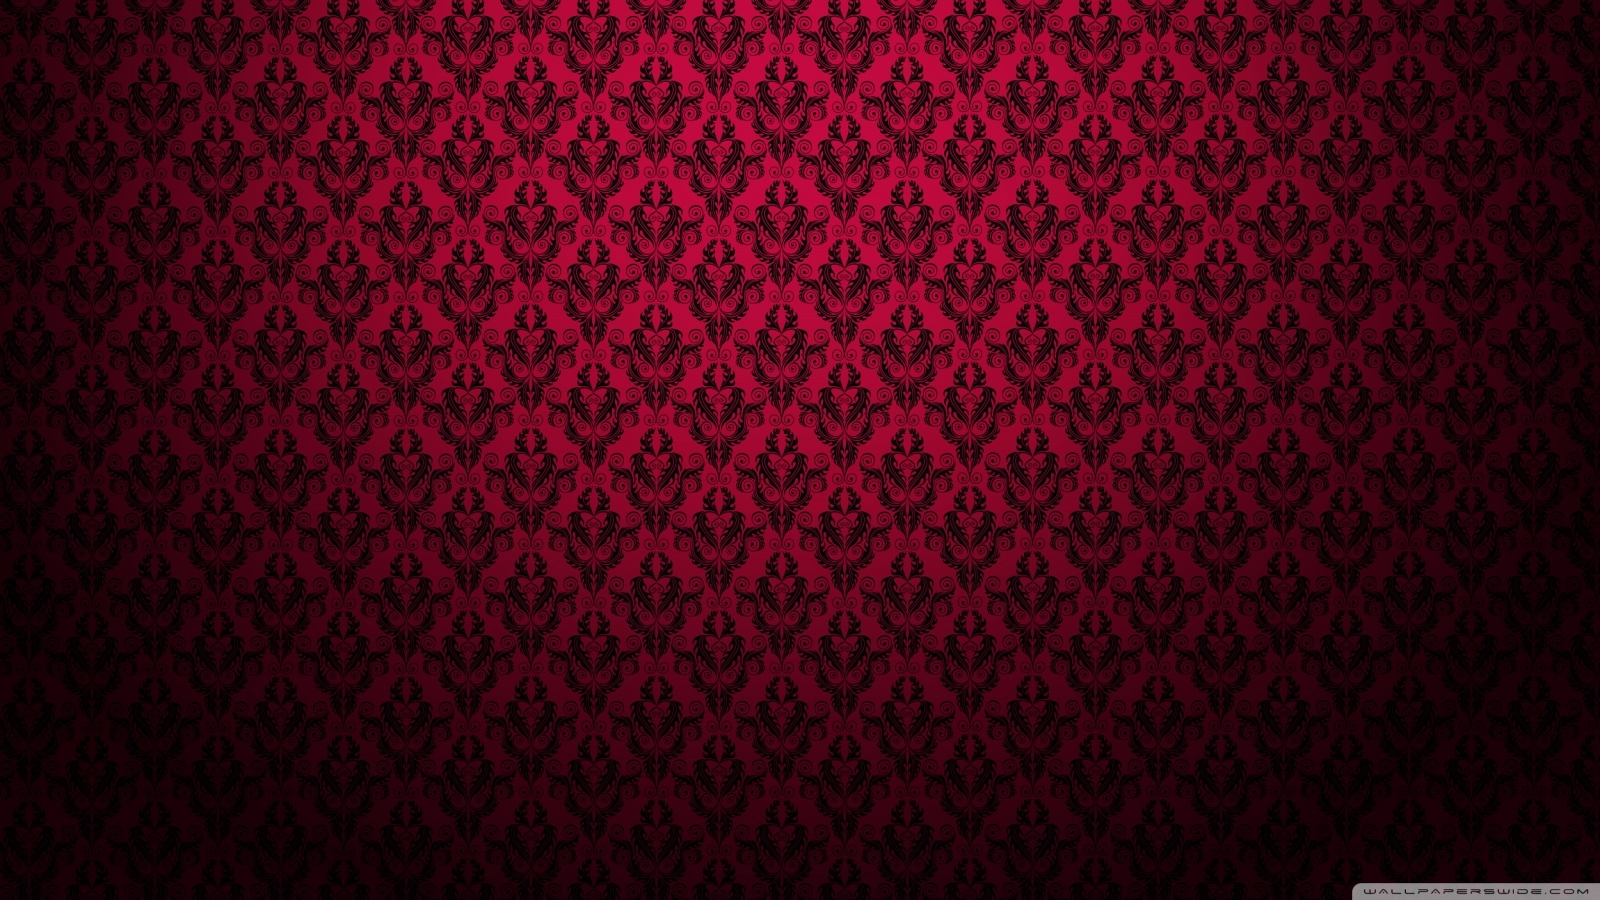 background-pattern-red-Lastest-Red-Pattern-Hd-Desktop-Widescreen-High-Definition-withi-wallpaper-wp3402816